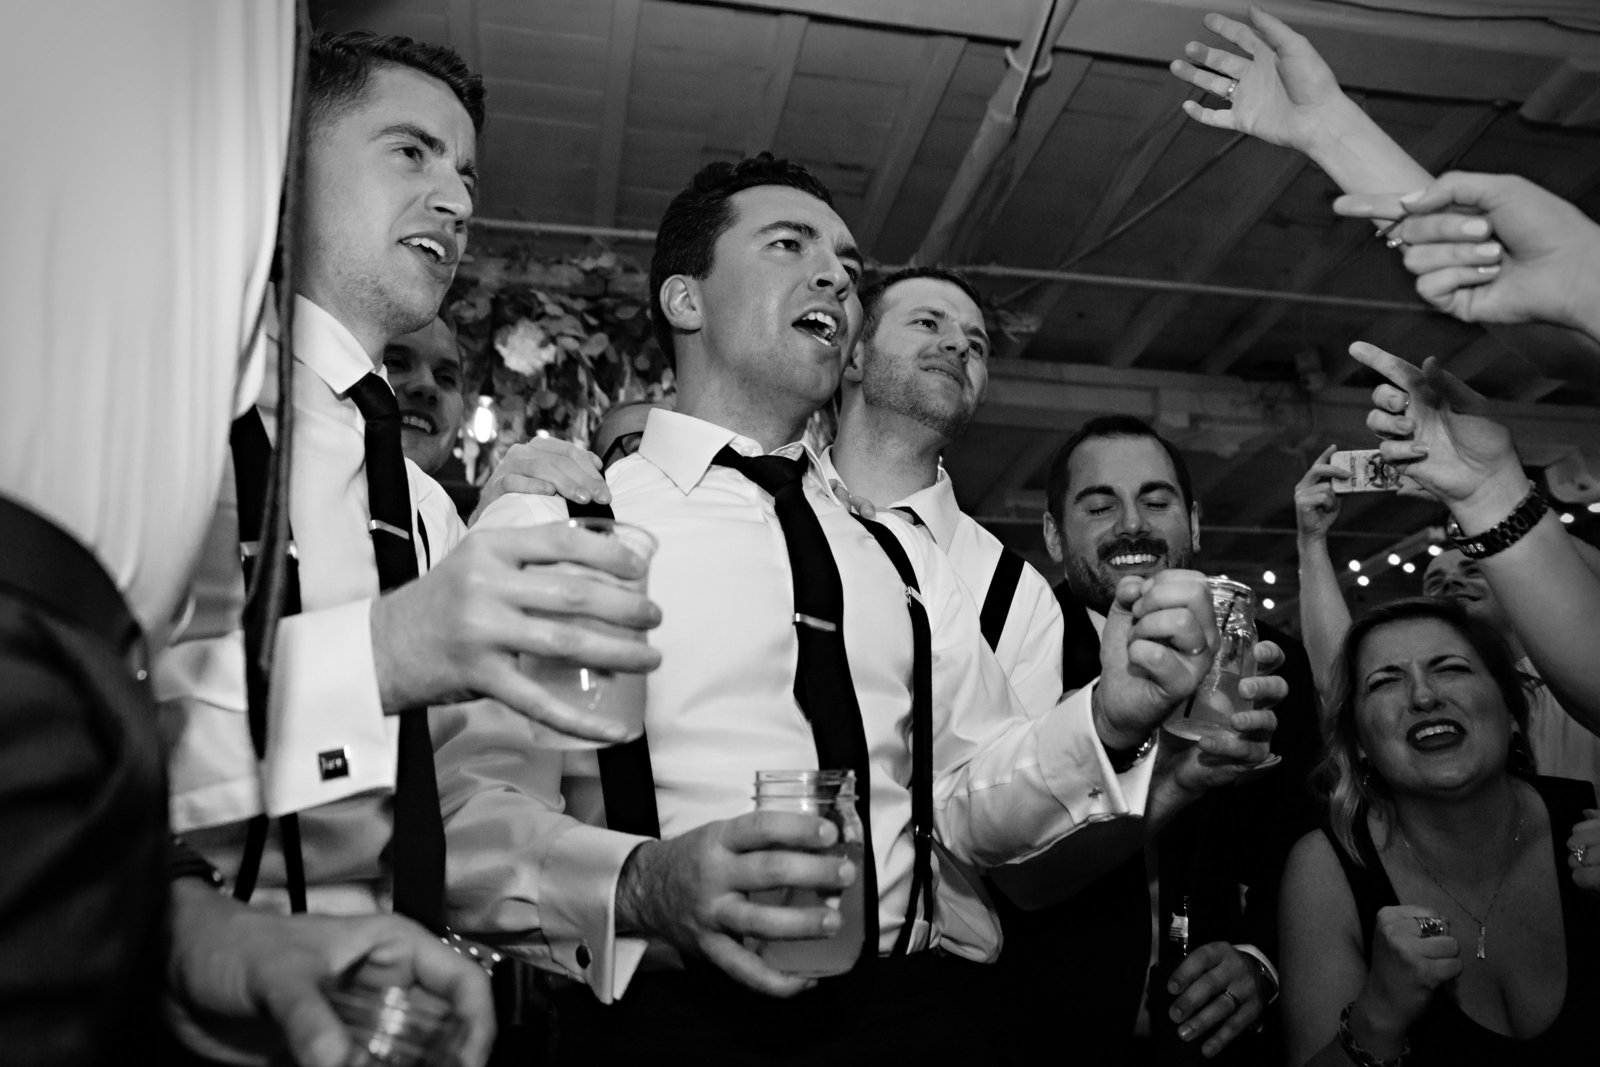 Portland-Maine-Wedding-Photographers-Reception-Groom-Wedding-Party-I-AM-SARAH-V-Photography-Photo copy